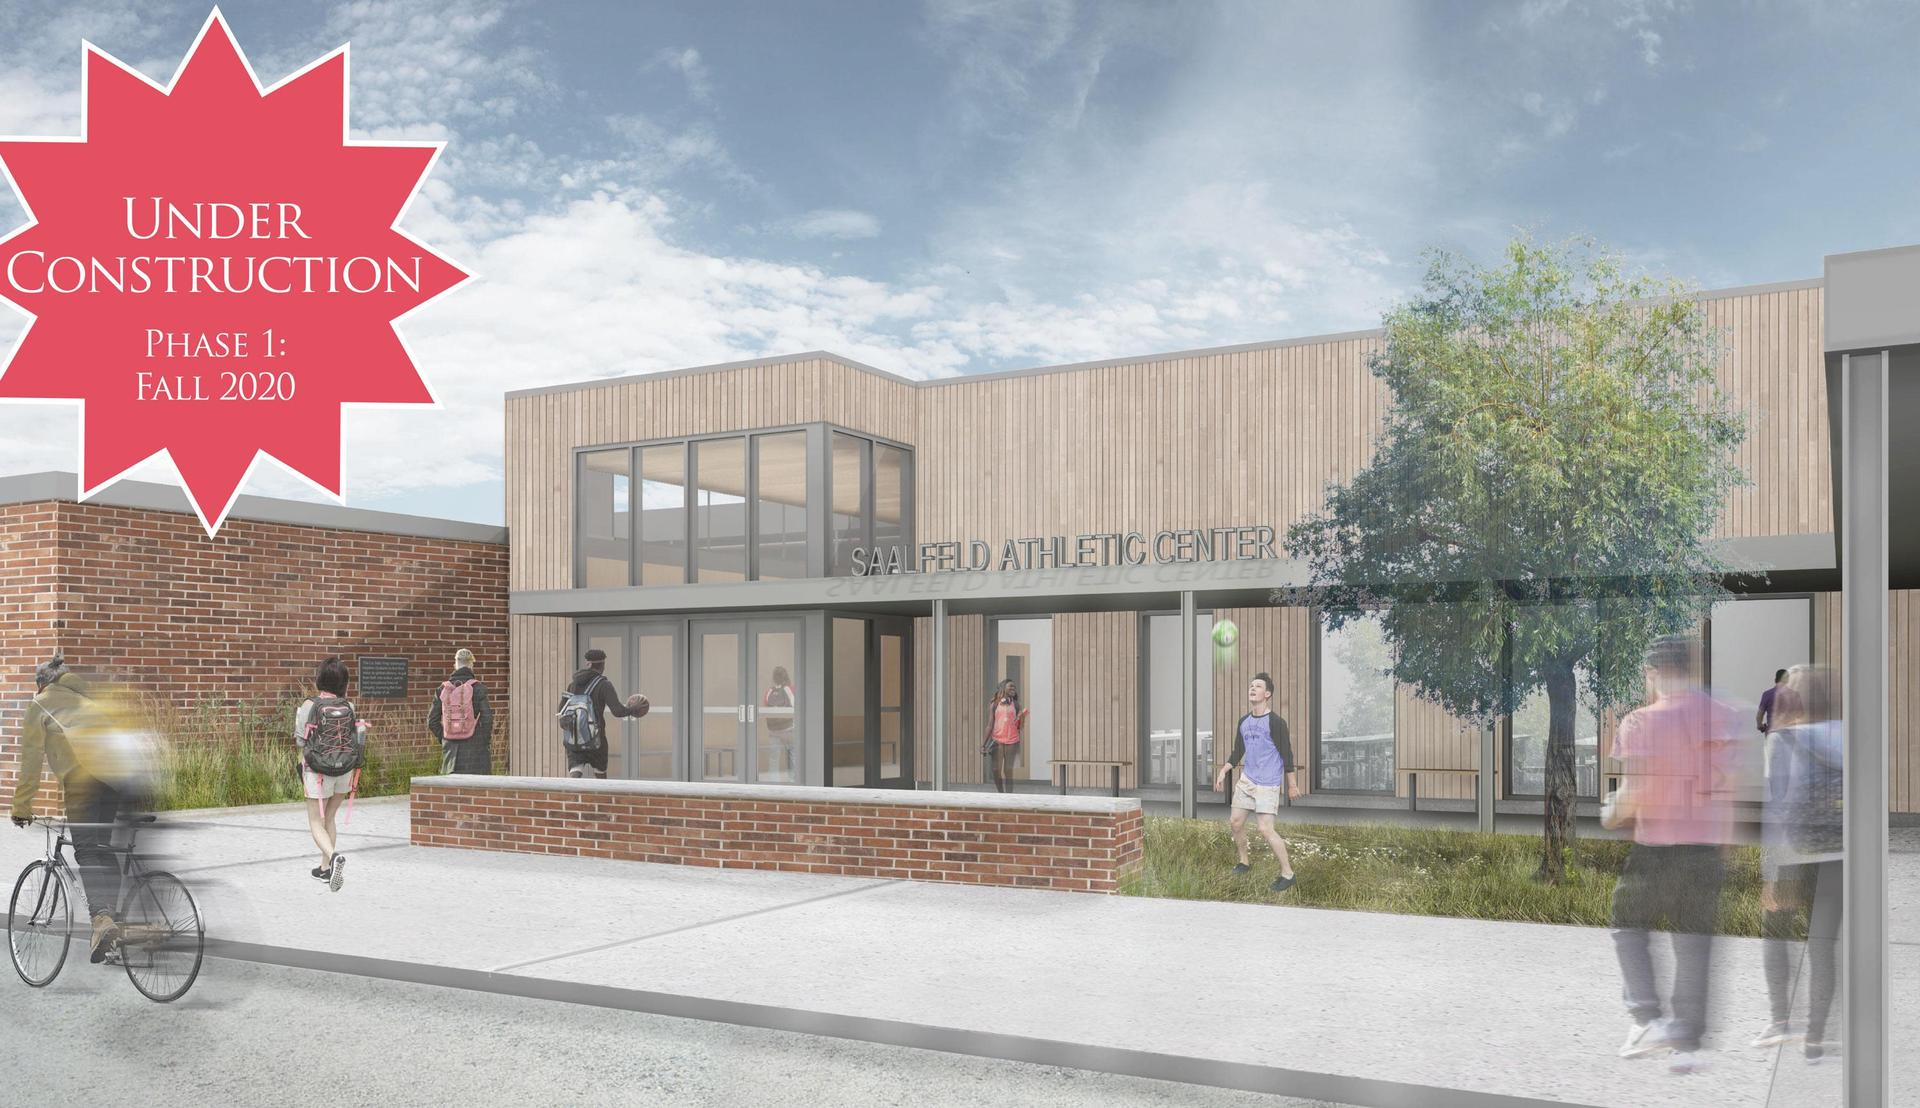 Saalfeld AtSaalfeld athletic center renderinghletic Center rendindering